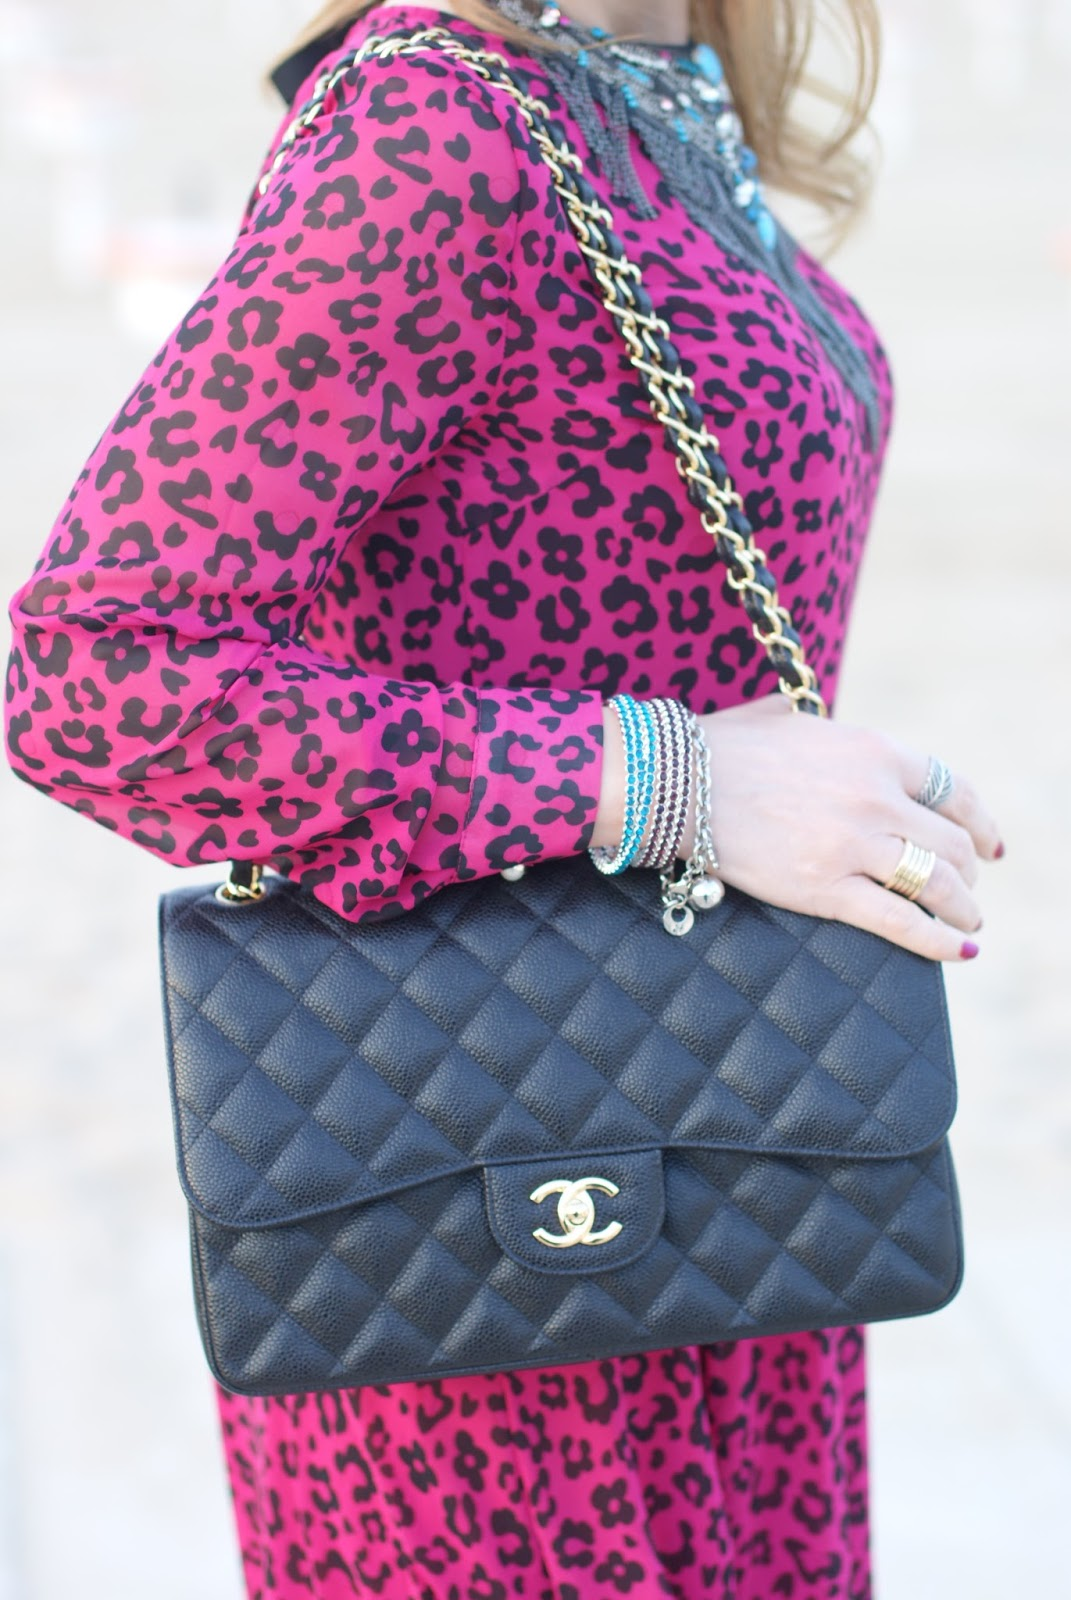 Chanel 2.55 bag, Luca Barra jewels, Fashion and Cookies fashion blog, fashion blogger style